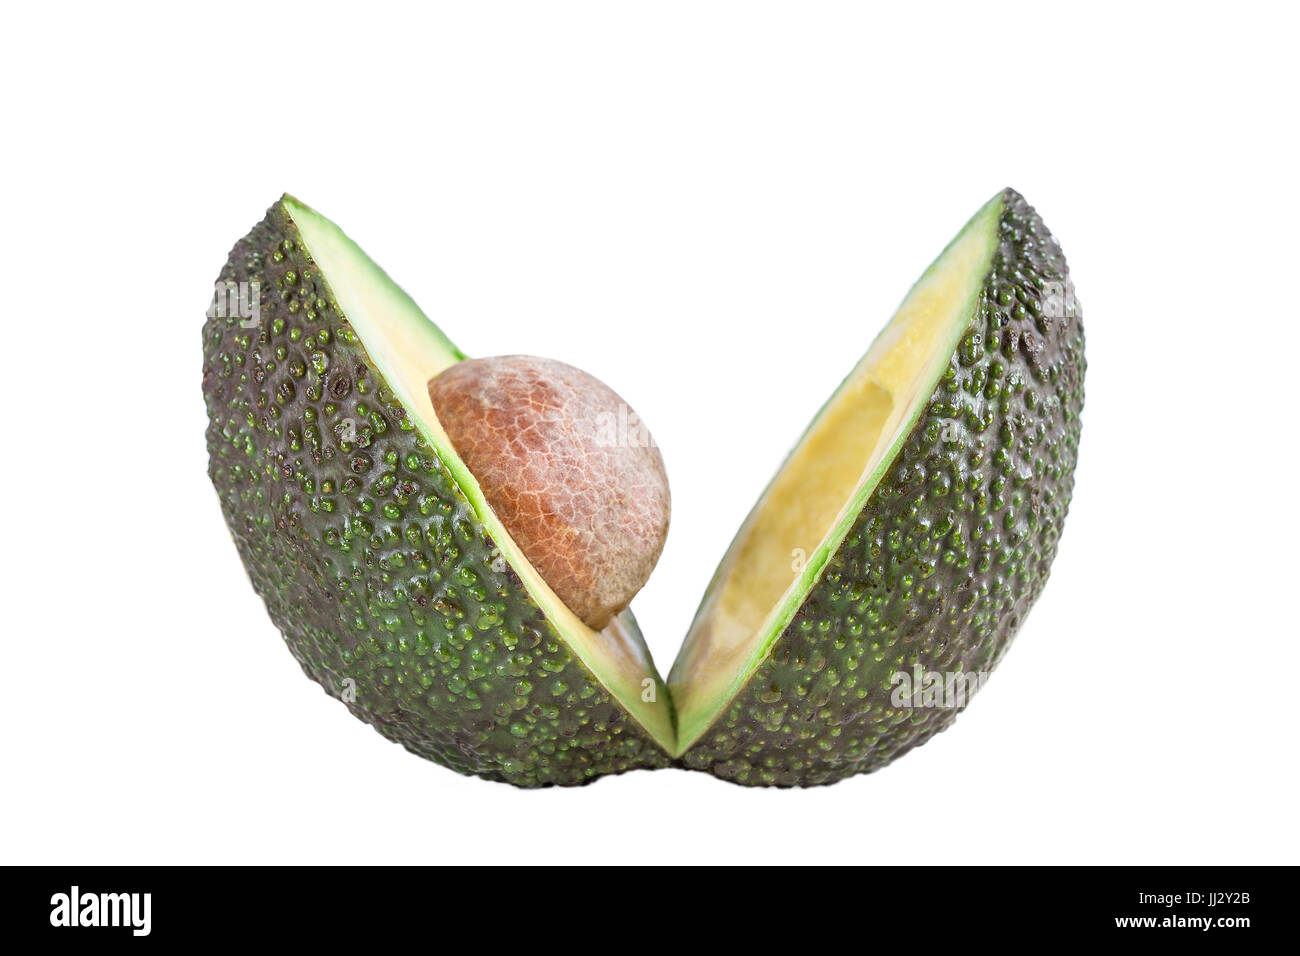 Two slices of avocado isolated Cut in v profile view one with core - Stock Image